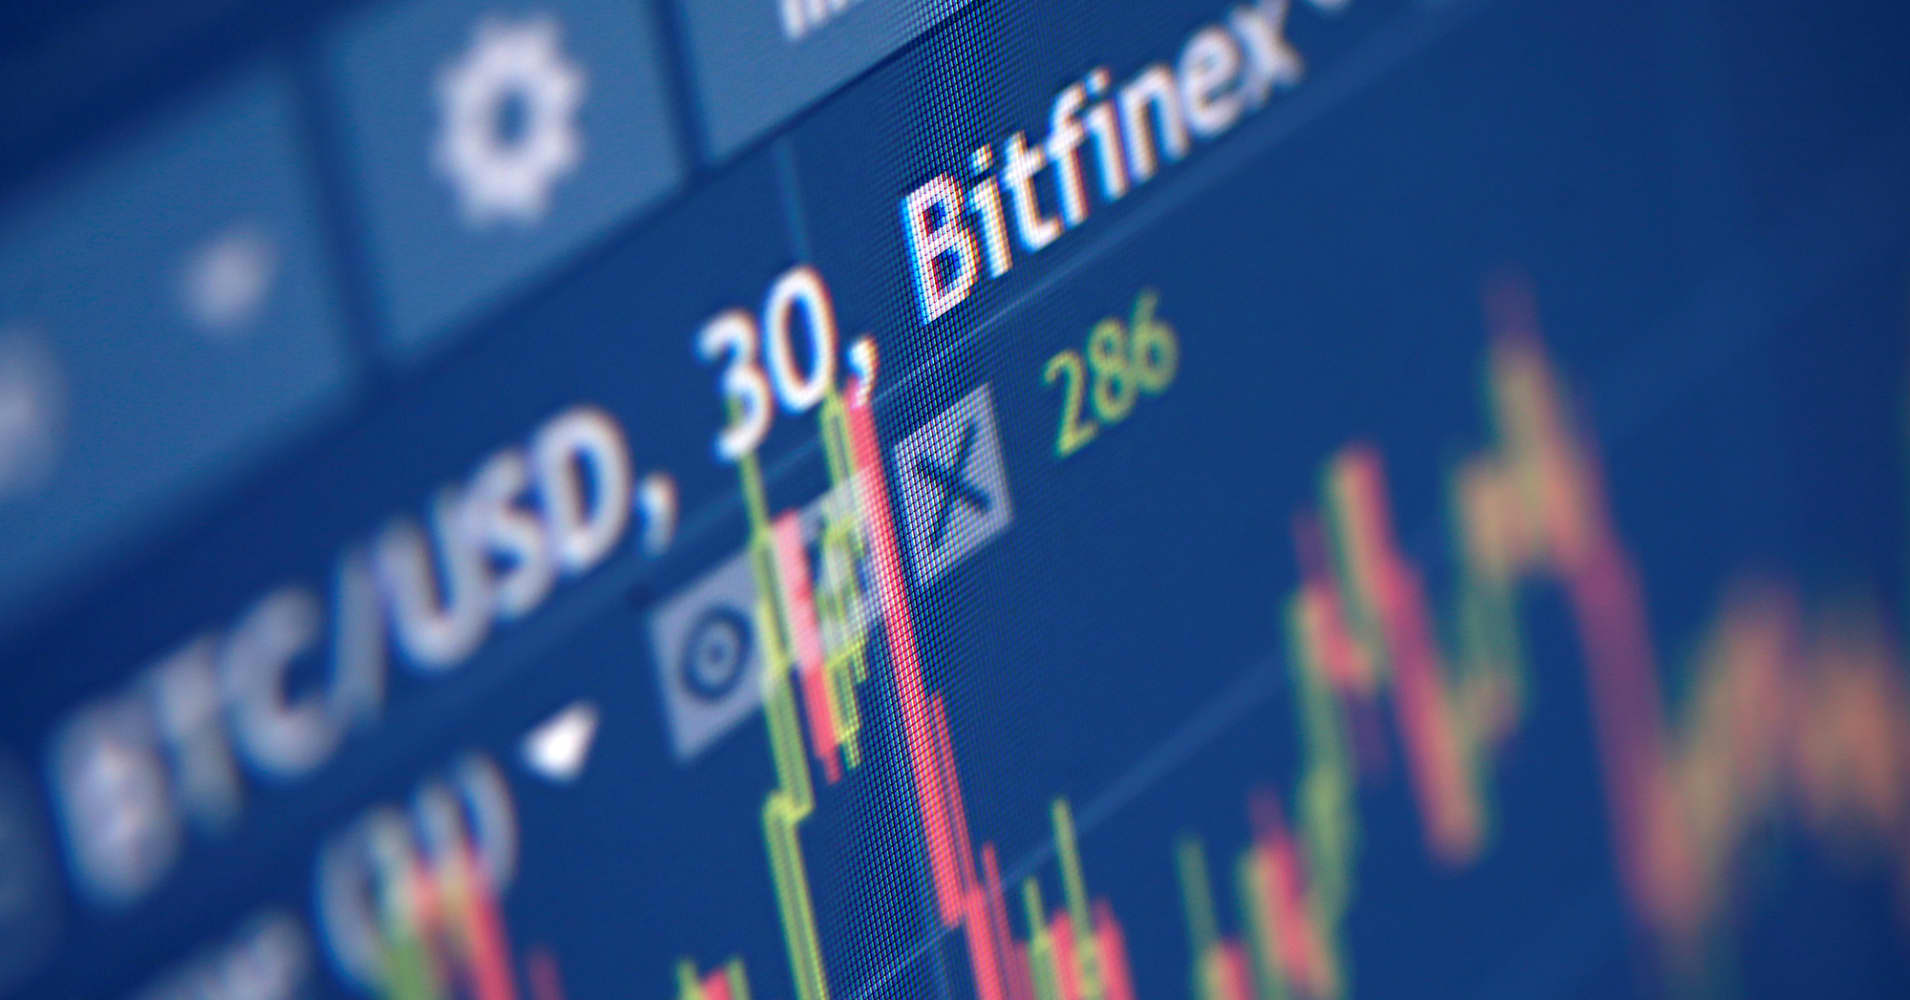 After bitcoin's rough week, currency strategist marks the next level to watch